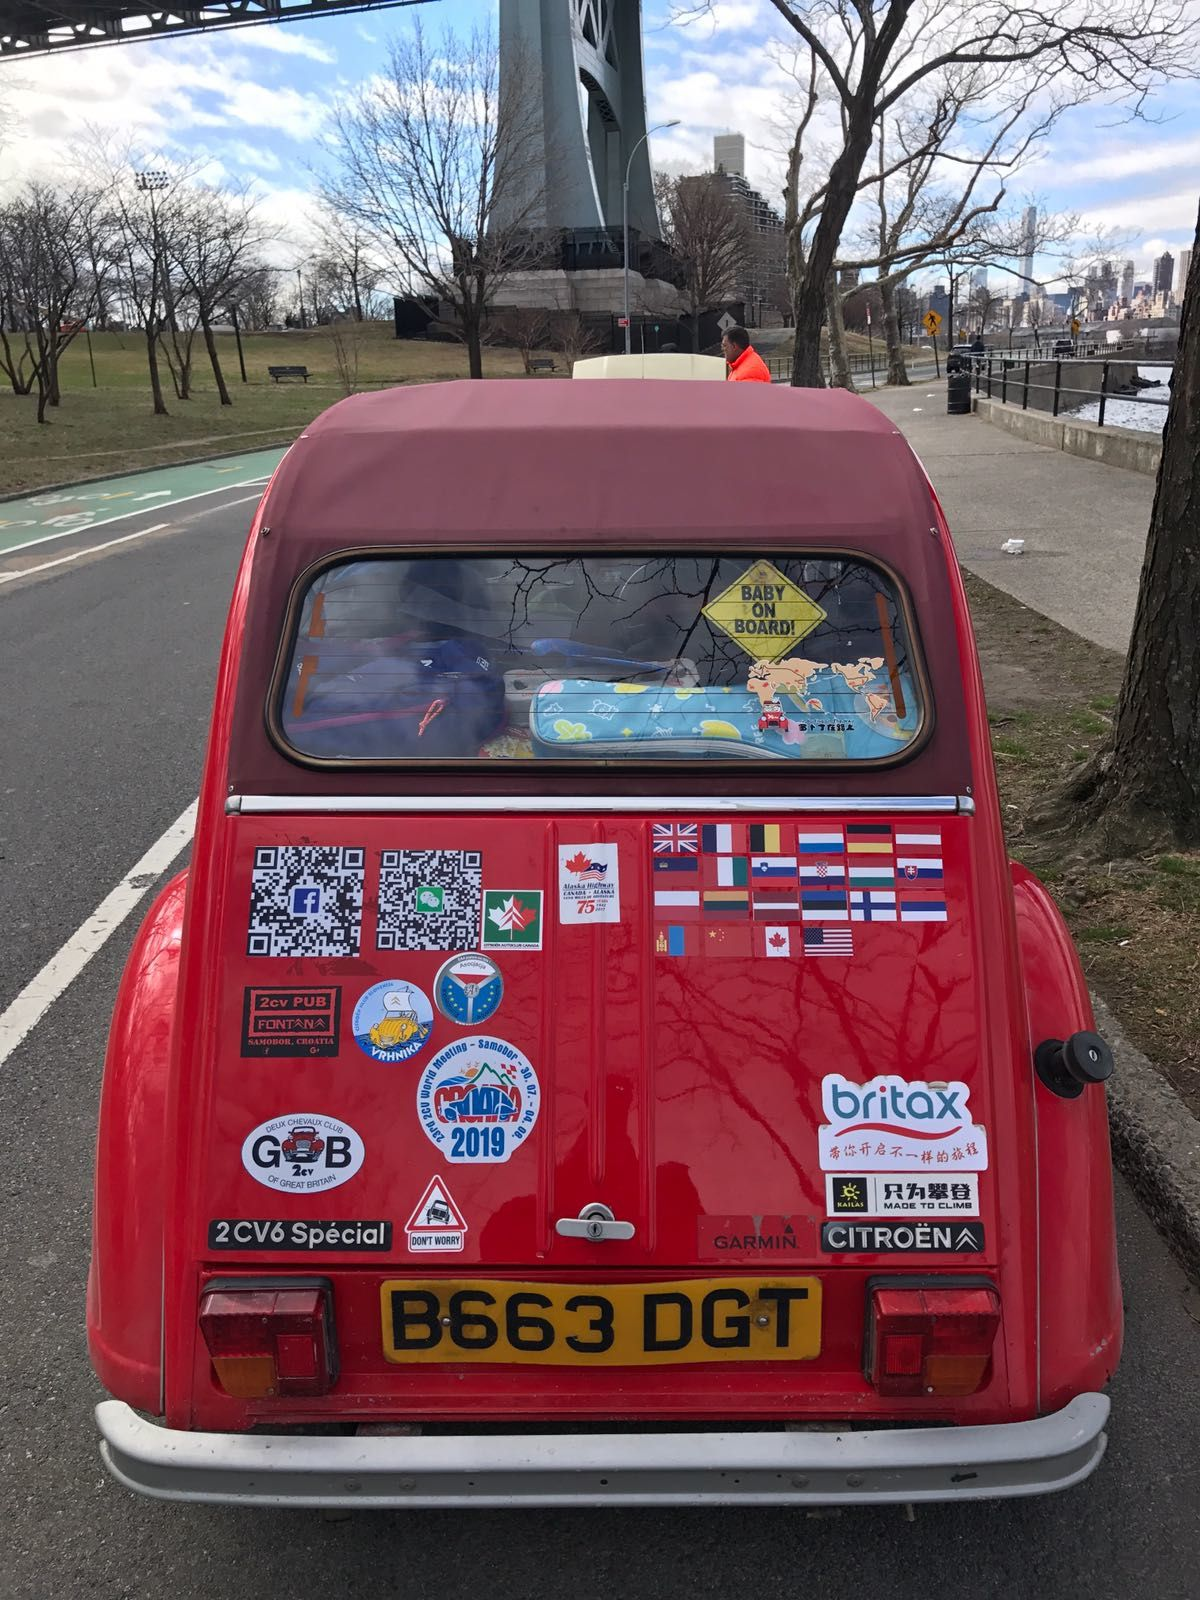 THE CITROEN 2 CV NEVER GIVES UP ! 25,000 MILES ALL AROUND THE WORLD !